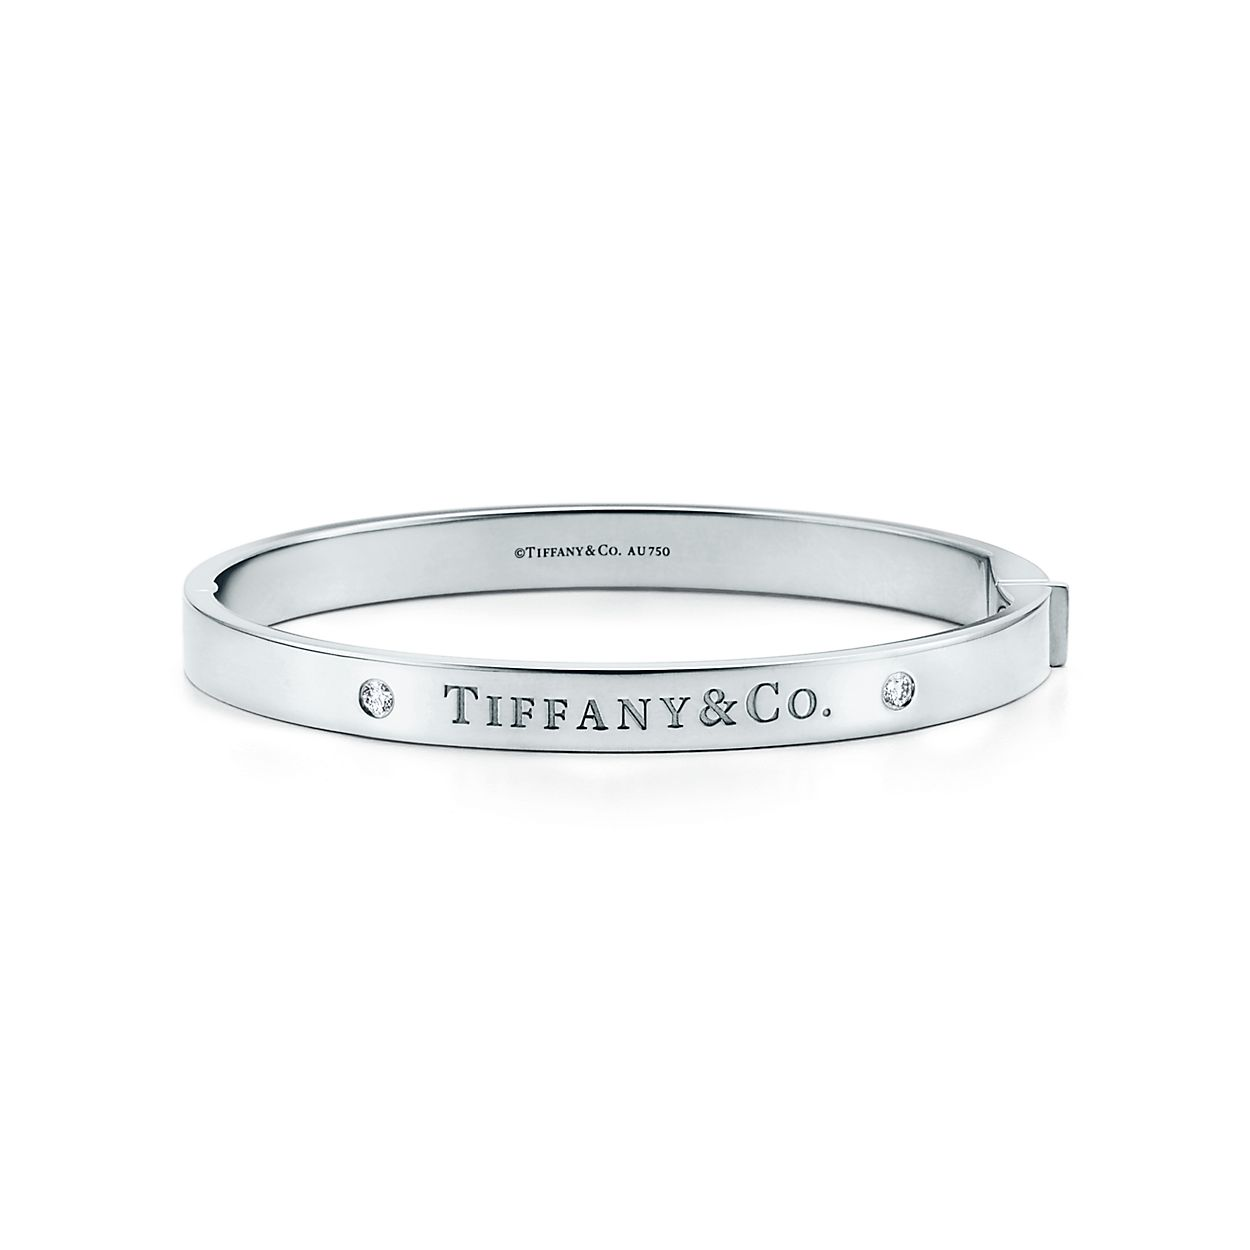 diamonds with gold medium wid constrain jewelry white fmt ed co id fit m hei bracelet hinged bangle in tiffany bracelets